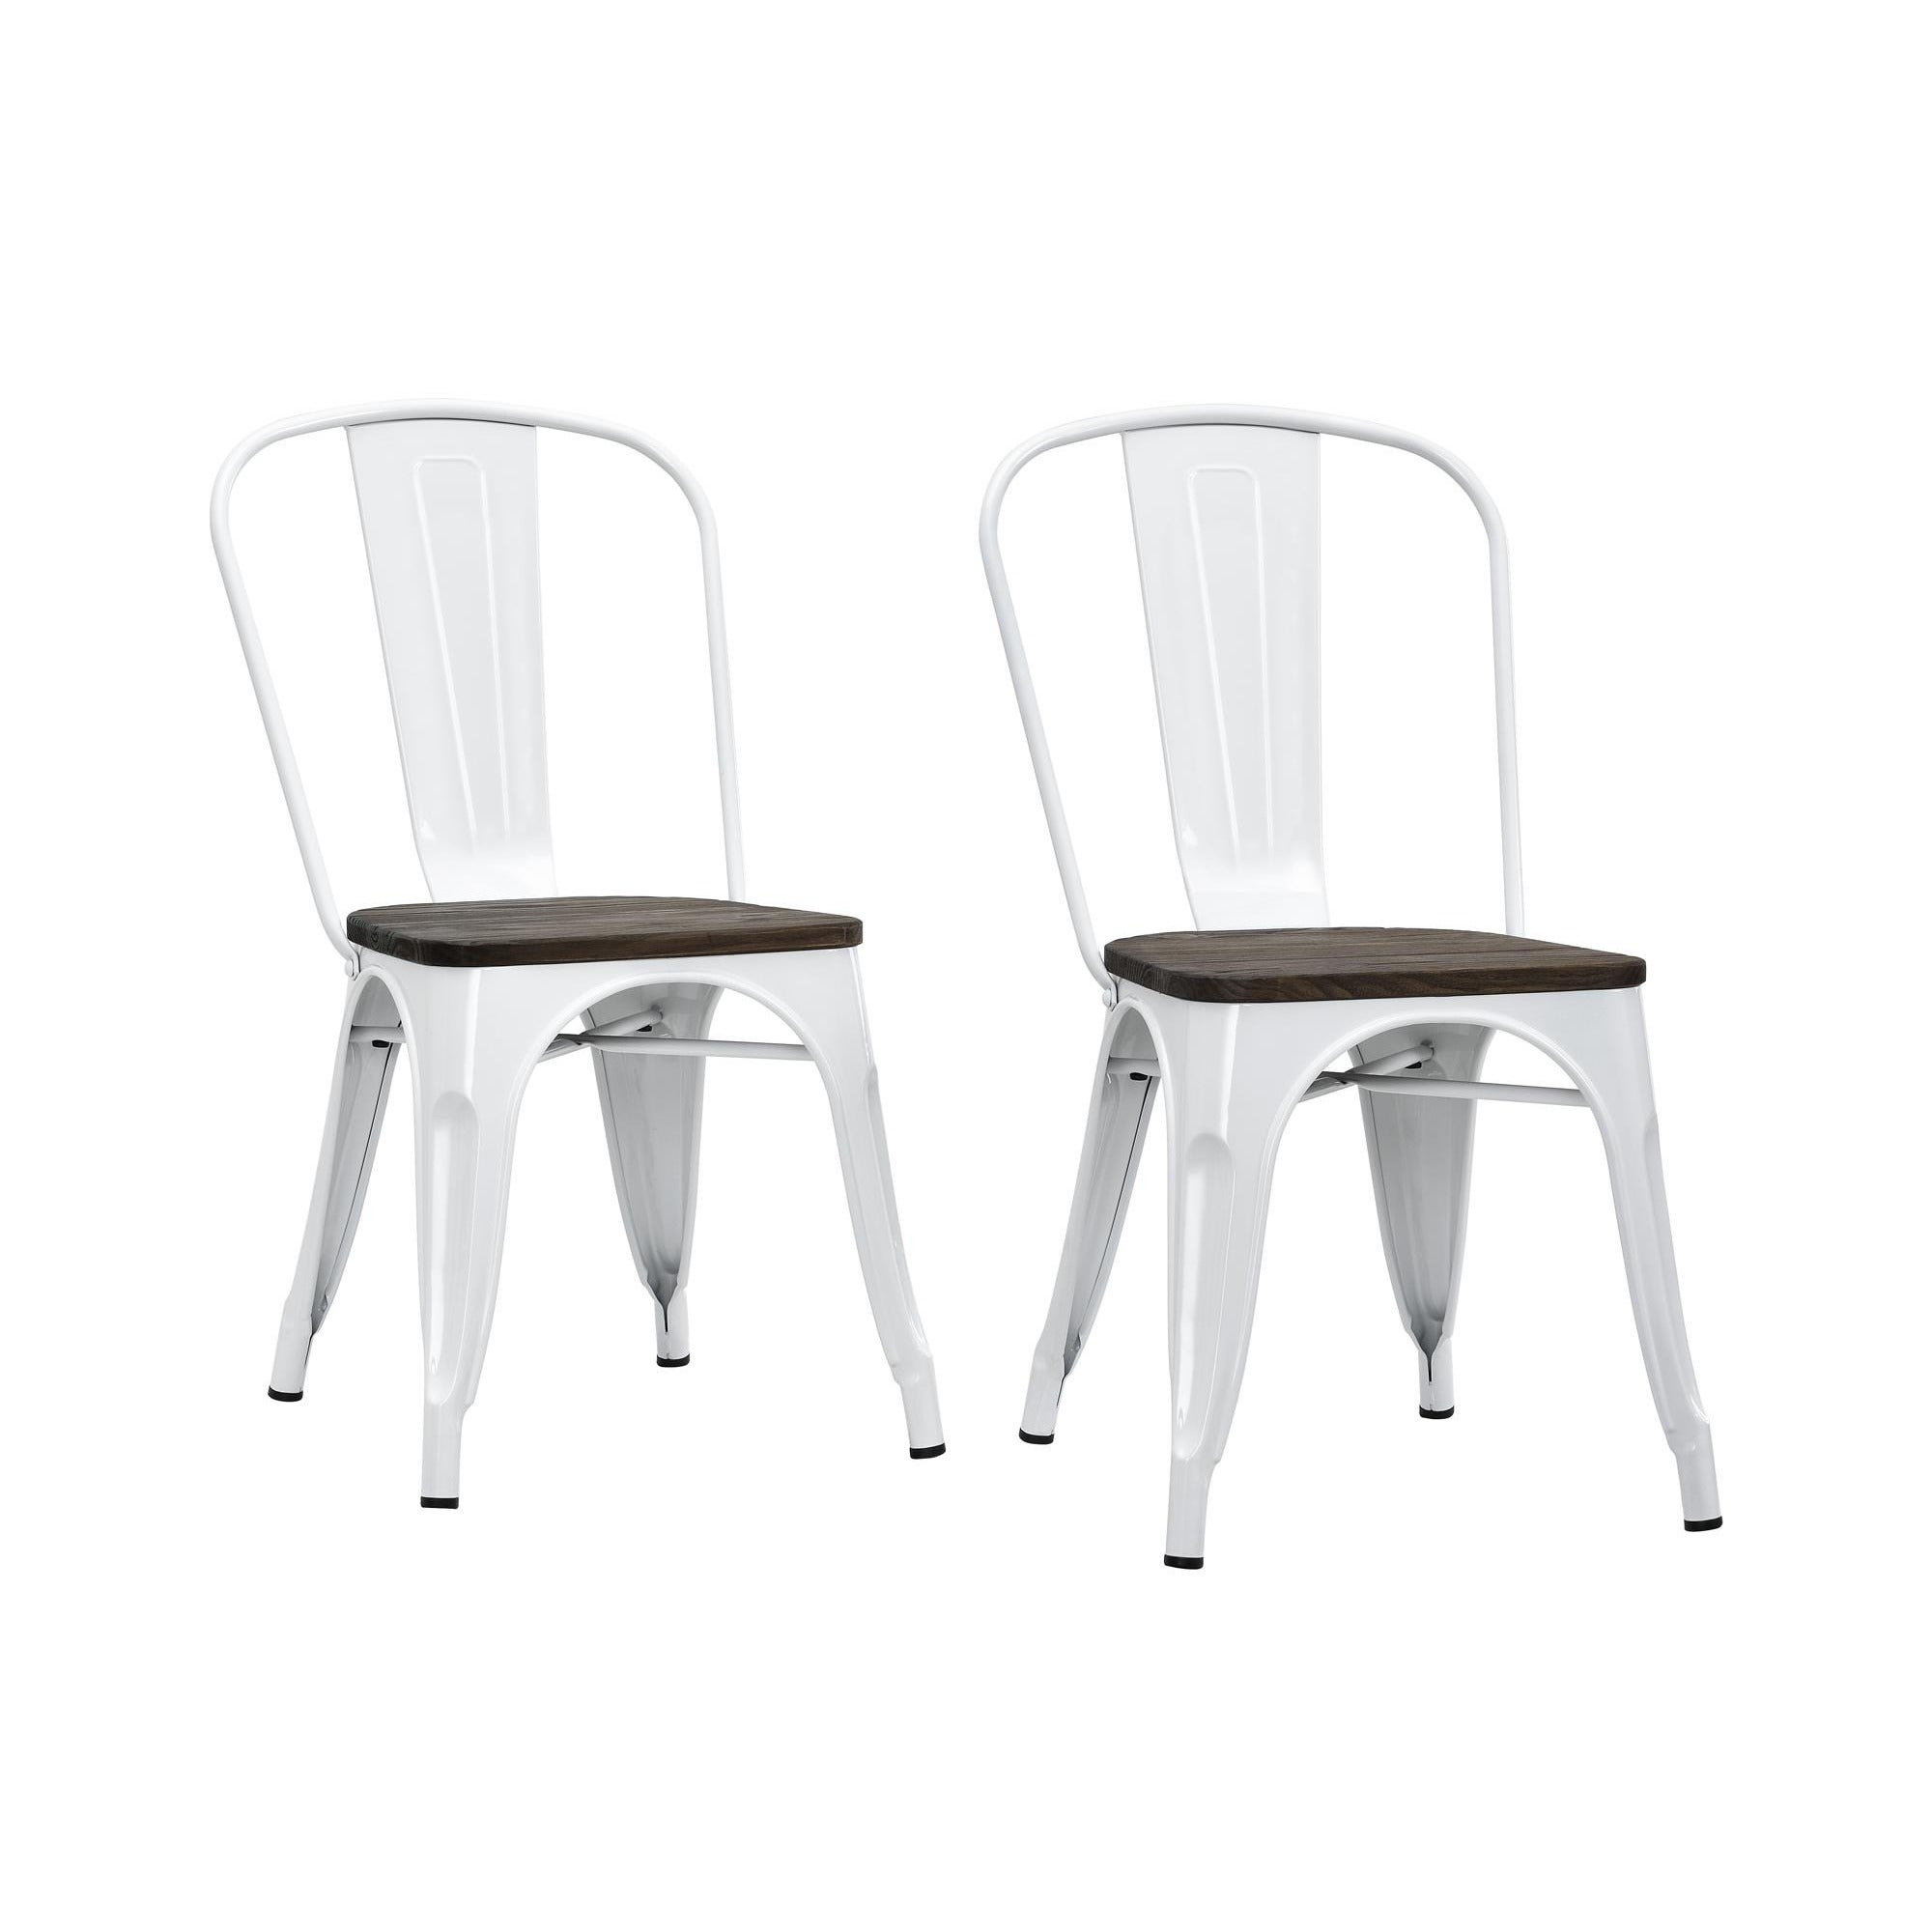 Dhp Fusion Metal Dining Chair Set Of 2 Free Shipping Today  # Muebles Fuzion Santa Rosa